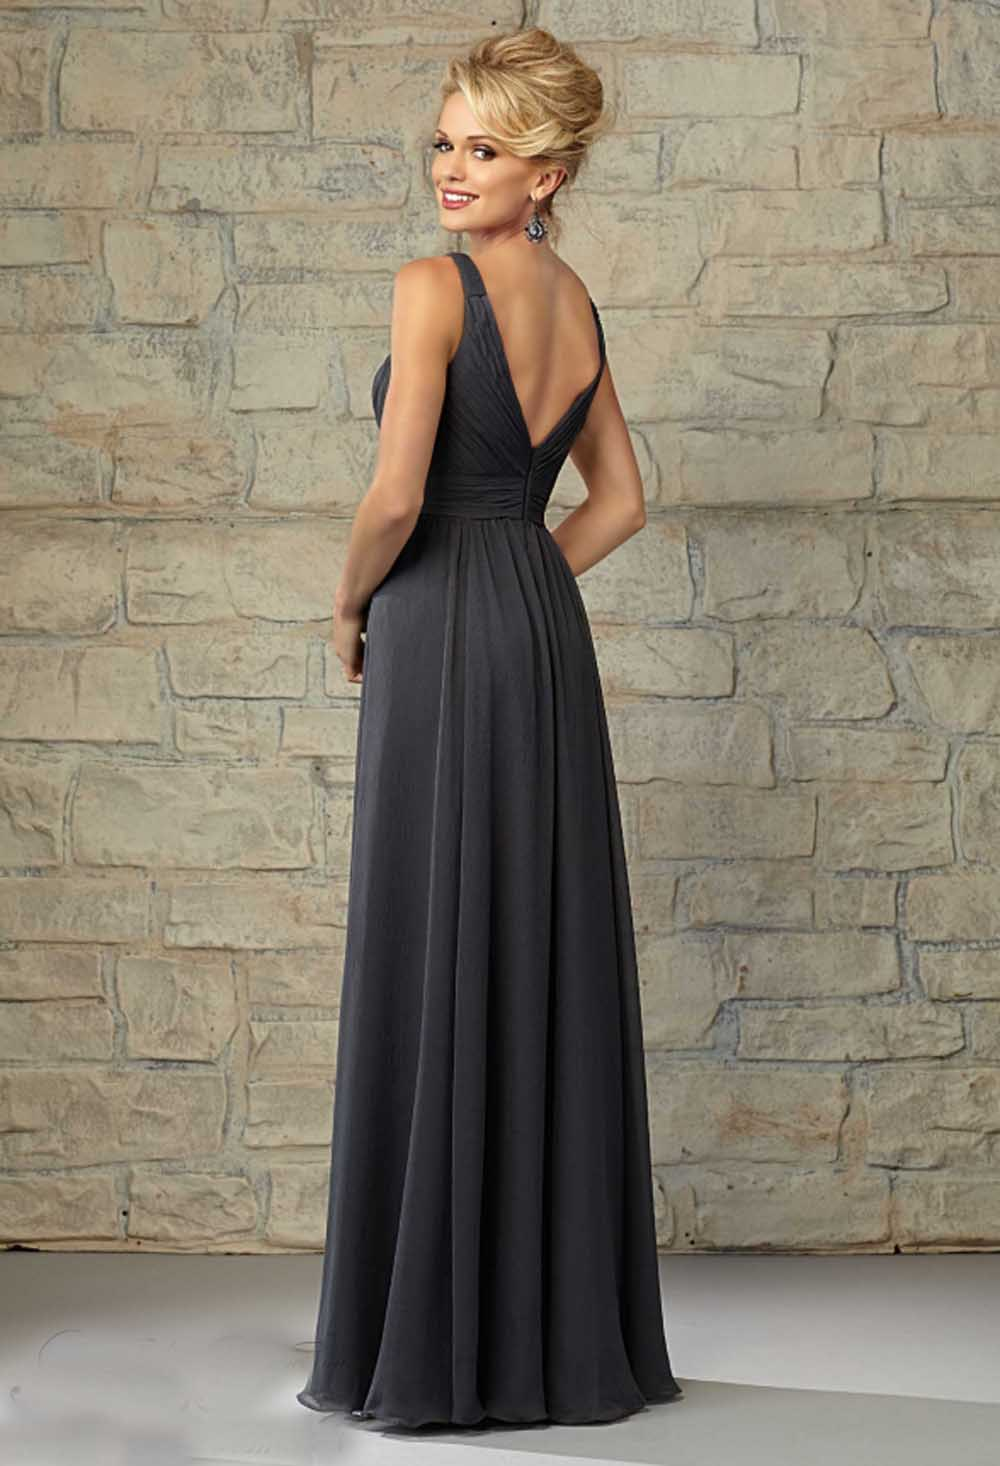 Aliexpress buy grey bridesmaid dresses free shipping sexy v aliexpress buy grey bridesmaid dresses free shipping sexy v neck v back pleat pink chiffon damask bridemaids dresses for wedding winter style from ombrellifo Image collections